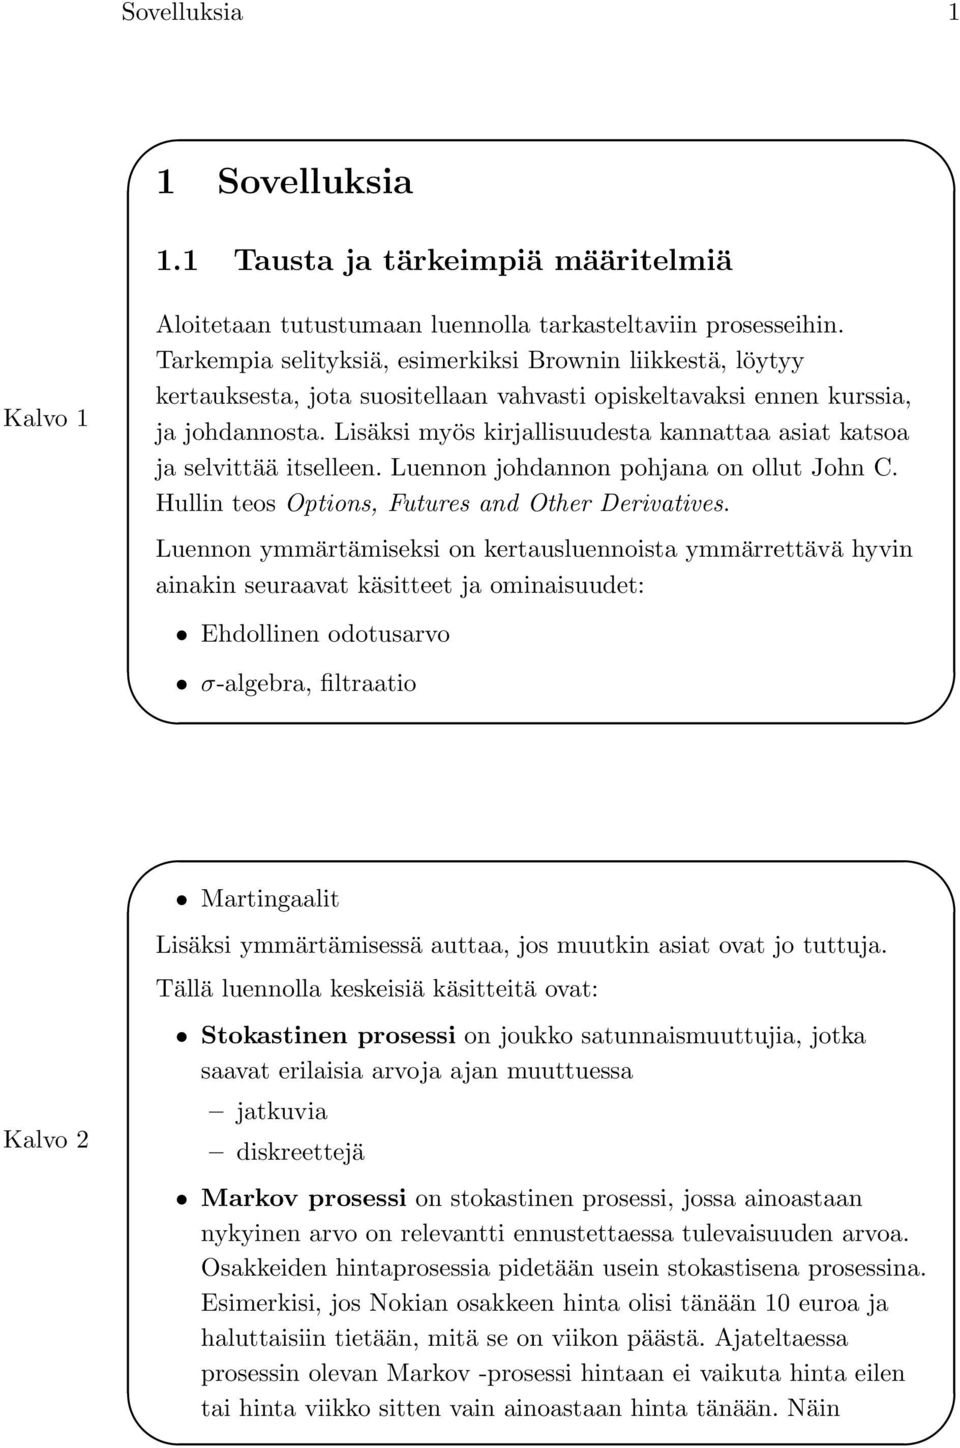 Lisäksi myös kirjallisuudesta kannattaa asiat katsoa ja selvittää itselleen. Luennon johdannon pohjana on ollut John C. Hullin teos Options, Futures and Other Derivatives.